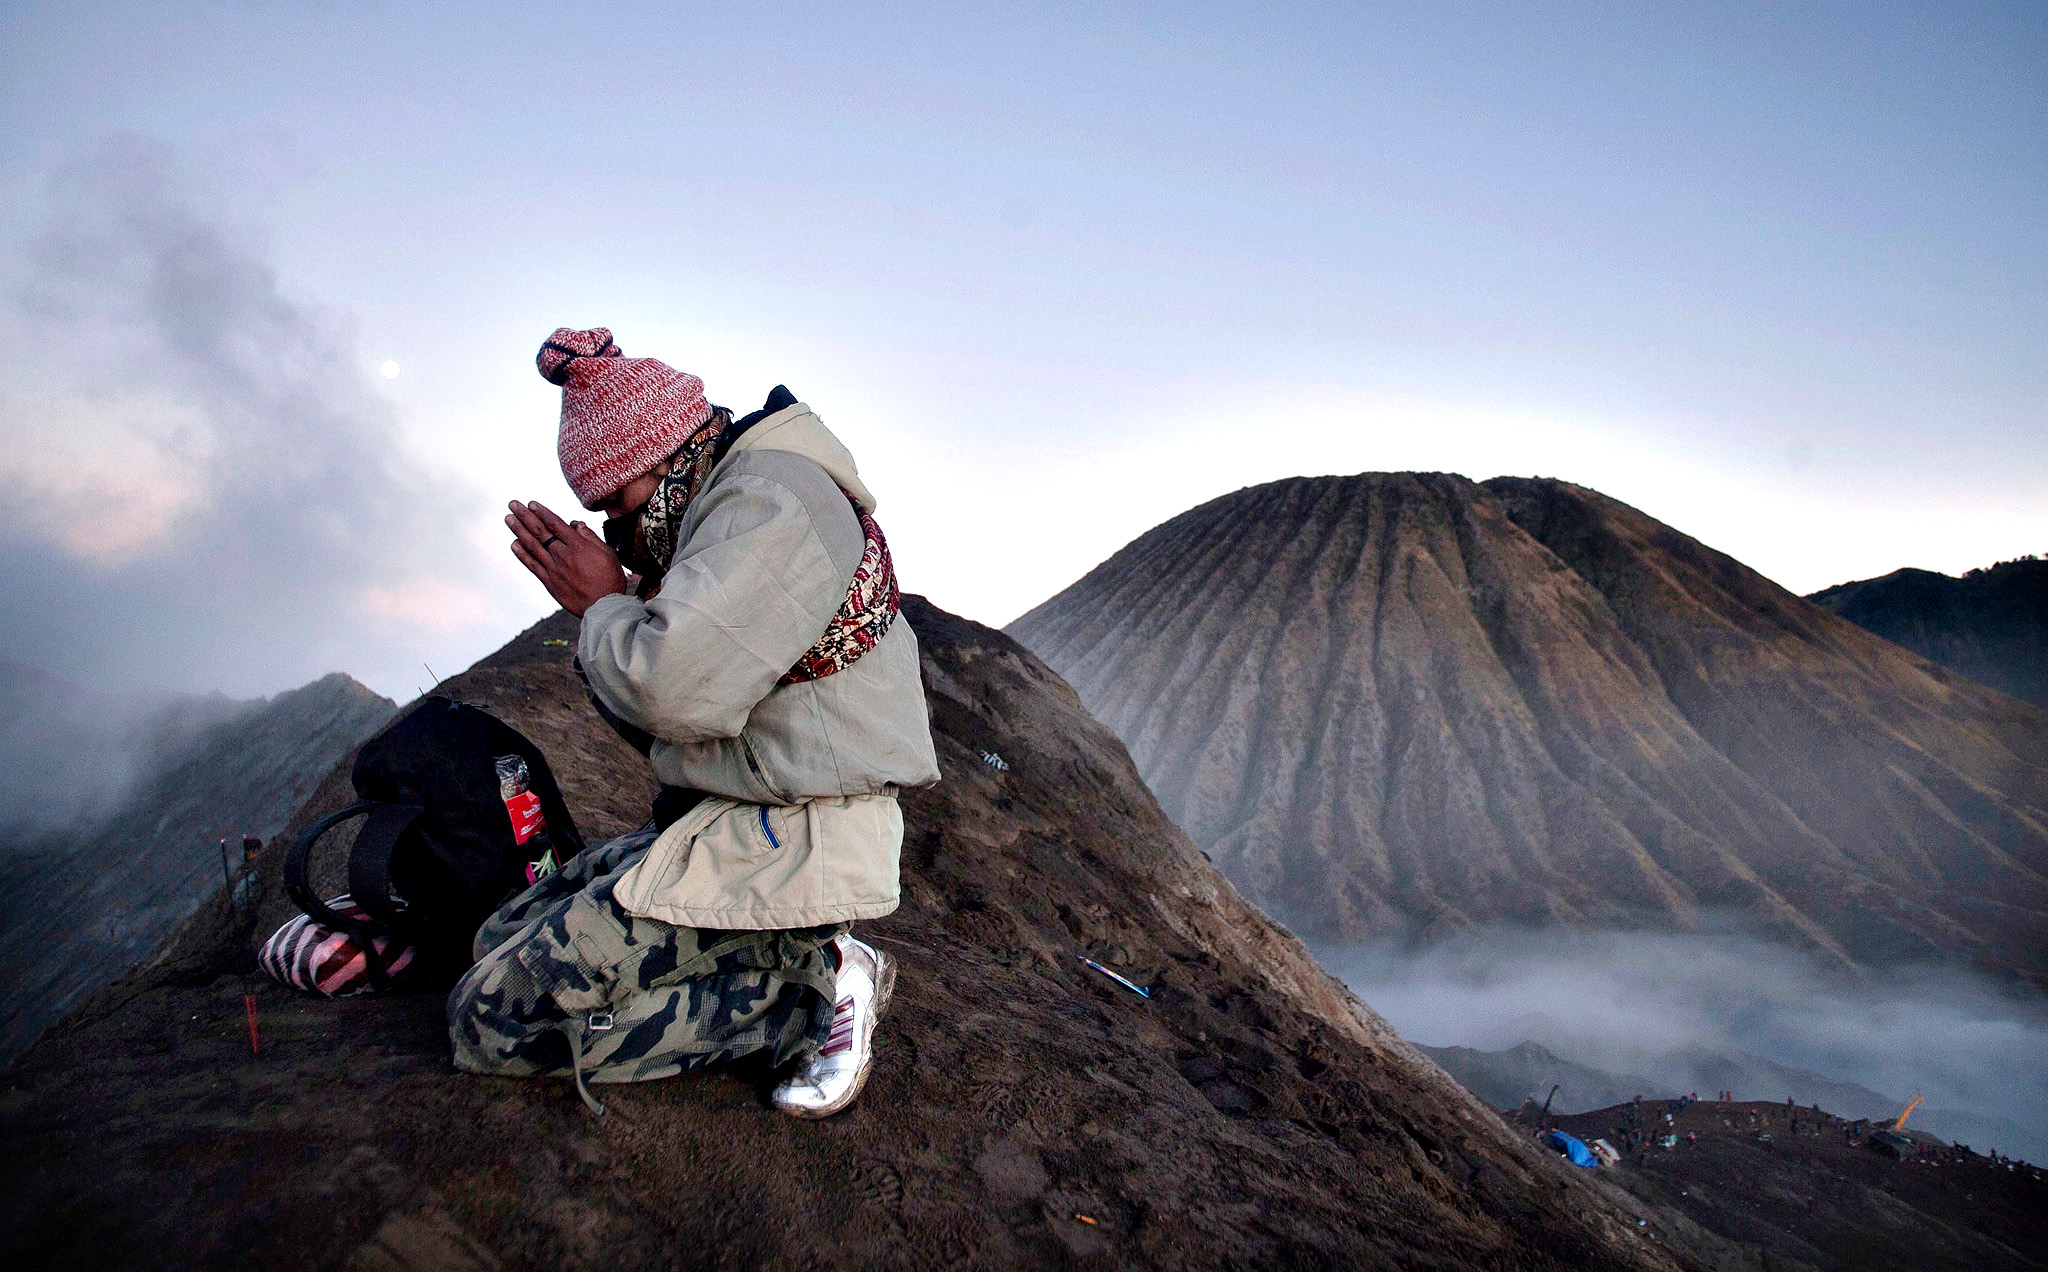 A Tengger tribesman prays at Mount Bromo during the annual Kasada ceremony in East Java onTuesday. The Kasada ceremony is a festival held every 14th day of the Kasada month in the traditional Hindu lunar calender to honour Sang Hyang Widhi (God Almighty) and is based on the legend of Roro Anteng and Joko Seger from the Majapahit Kingdom, from which their Tengger tribe name originates